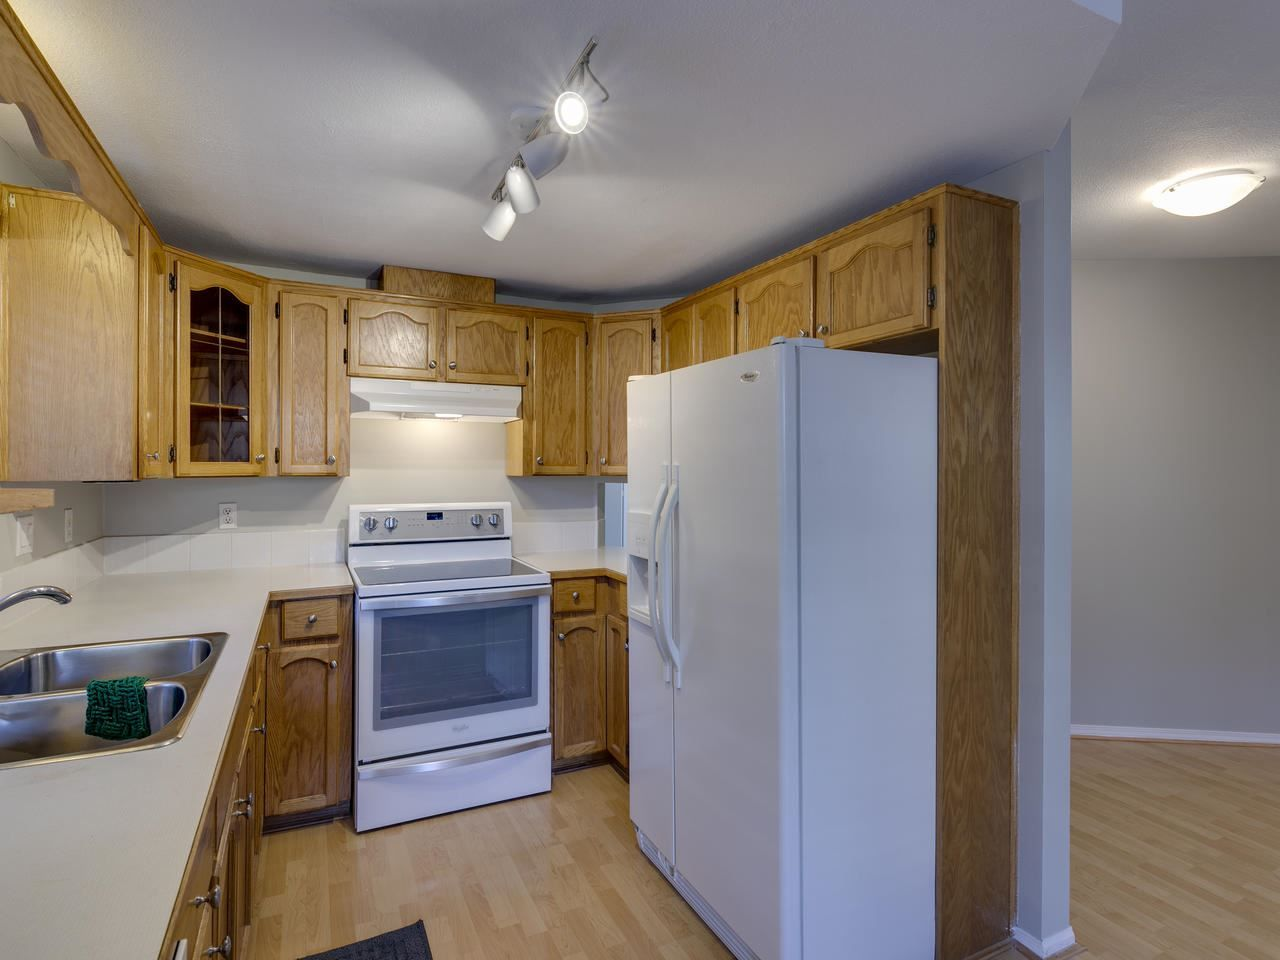 """Photo 24: Photos: 127 22555 116 Avenue in Maple Ridge: East Central Townhouse for sale in """"HILLSIDE"""" : MLS®# R2493046"""